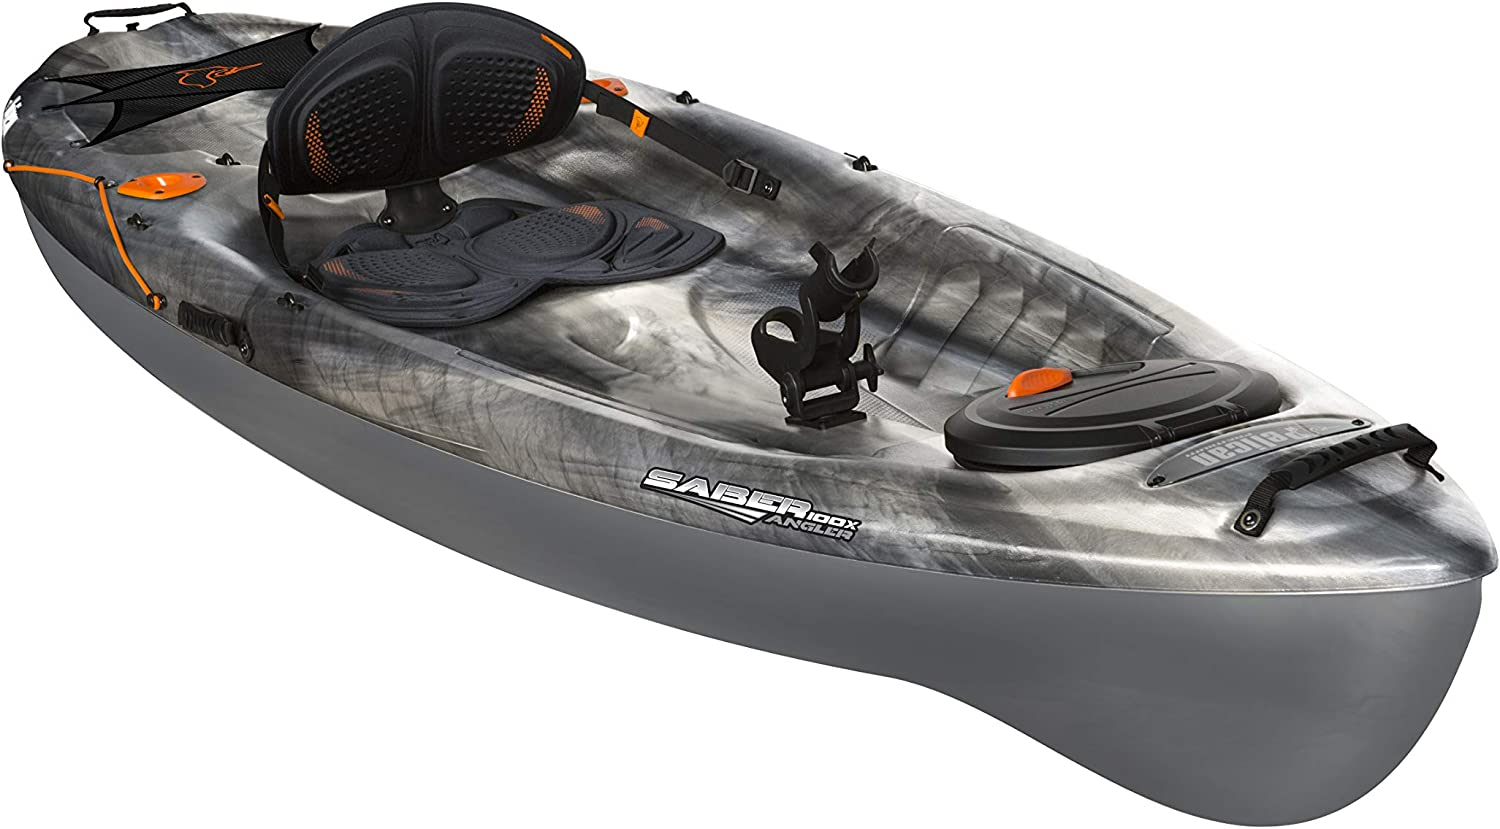 Amazon Com Pelican Saber 100x Angler Sit On Top Fishing Kayak Kayak 10 Feet Lightweight One Person Kayak Perfect For Fishing Granite Magnetic Grey One Size Sports Outdoors